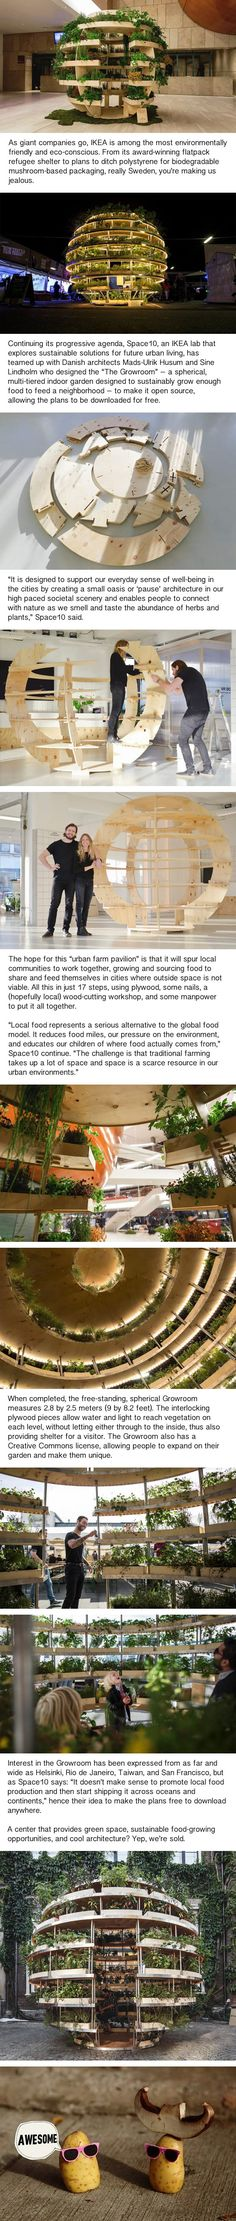 "Architects create free DIY sustainable ""Indoor Garden"" for urban living"